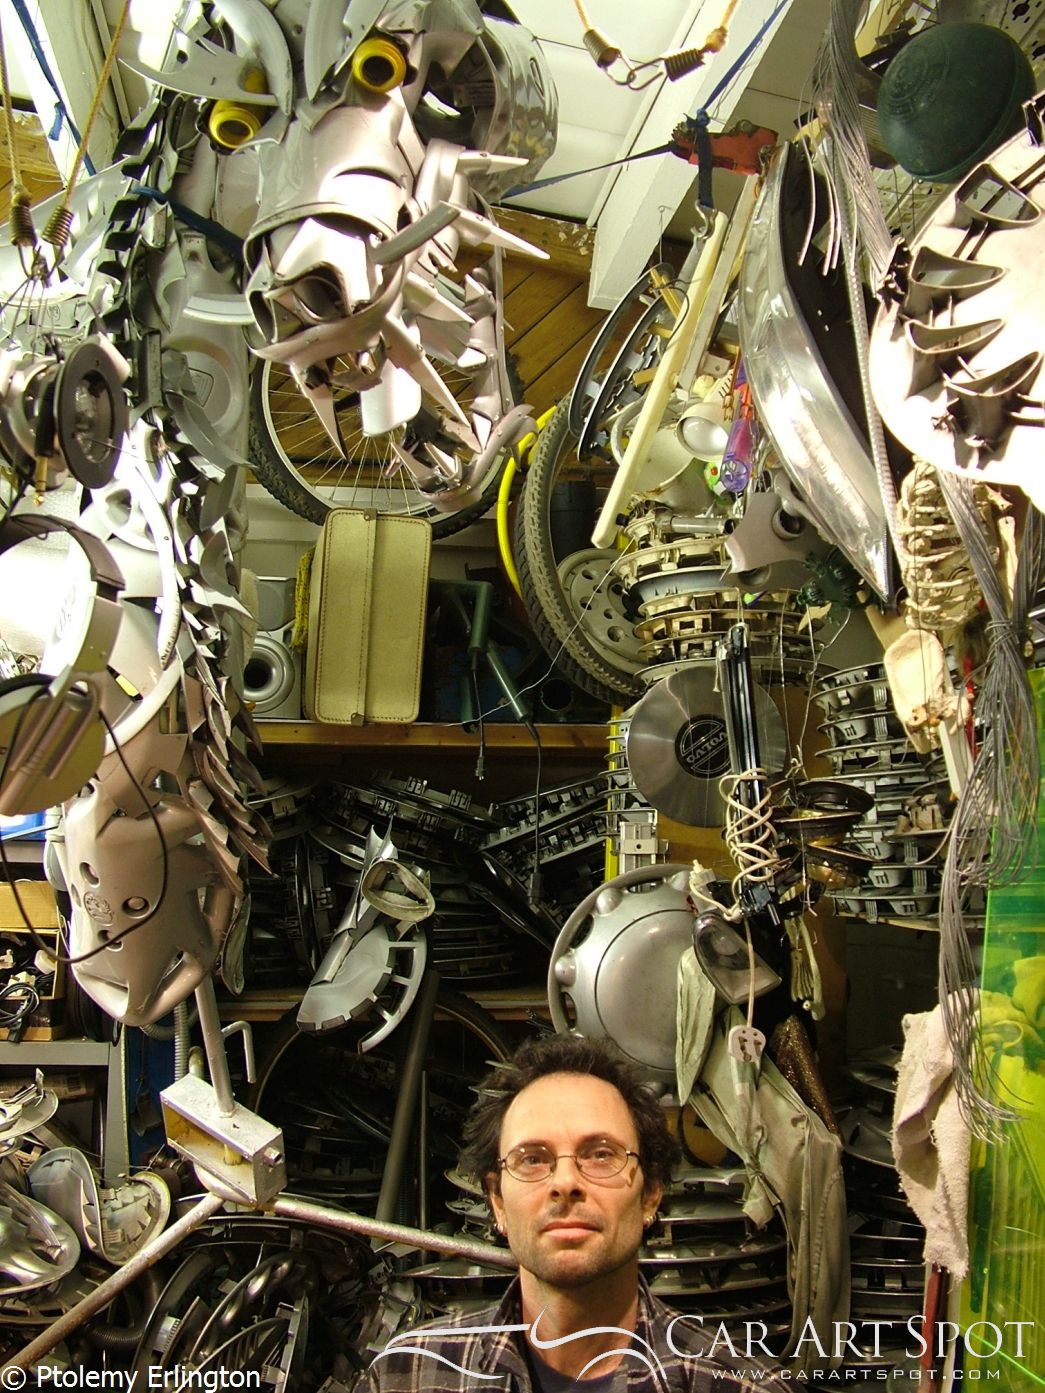 Ptolemy Erlington surrounded by his hubcap art